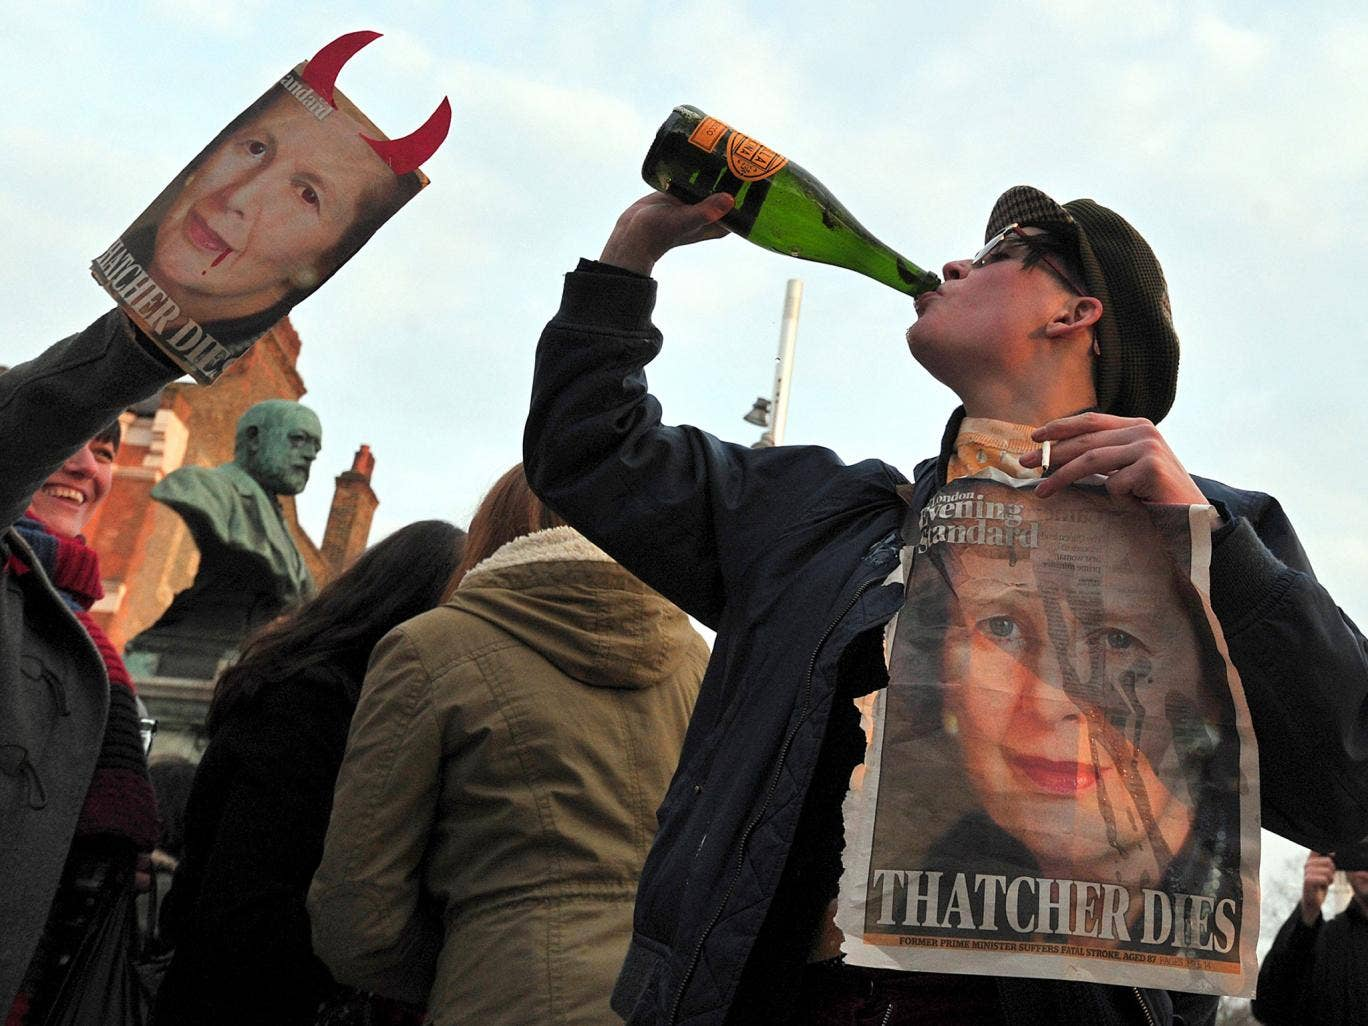 People gather during a 'party' to celebrate the death of former British Prime Minister Margaret Thatcher in London